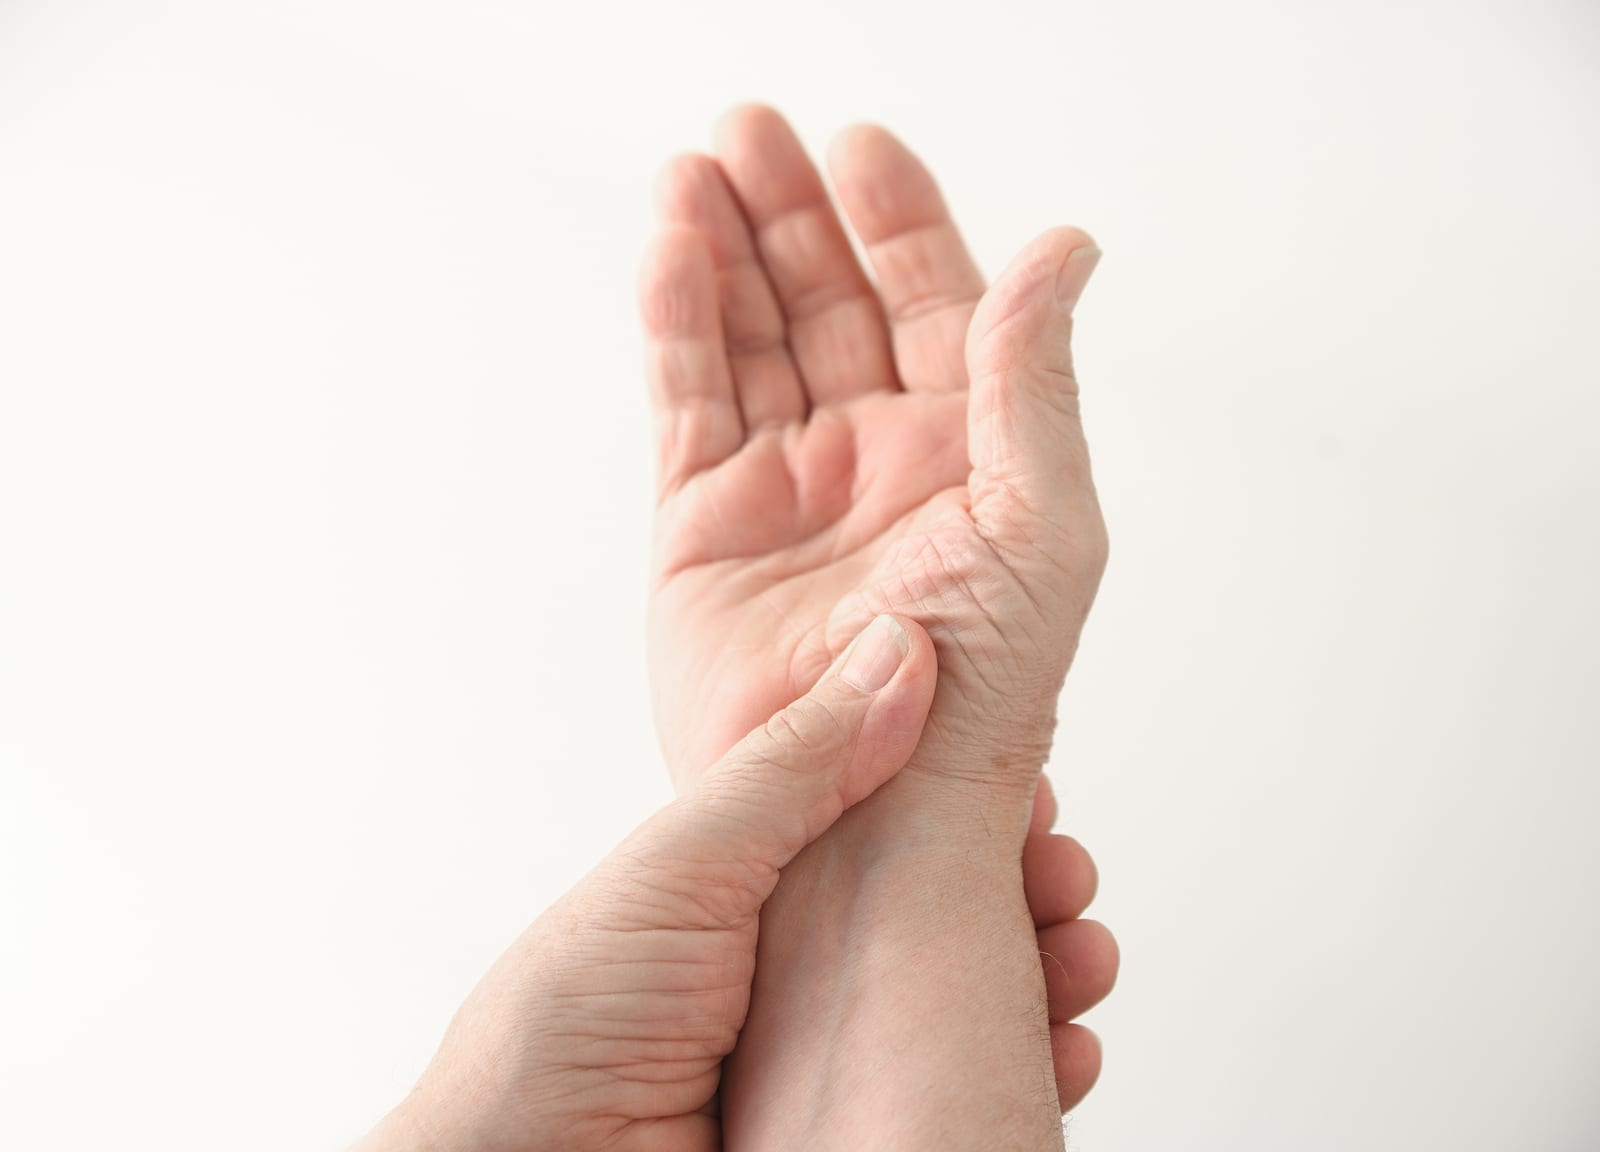 Why Do People With Diabetes Get Carpal Tunnel?